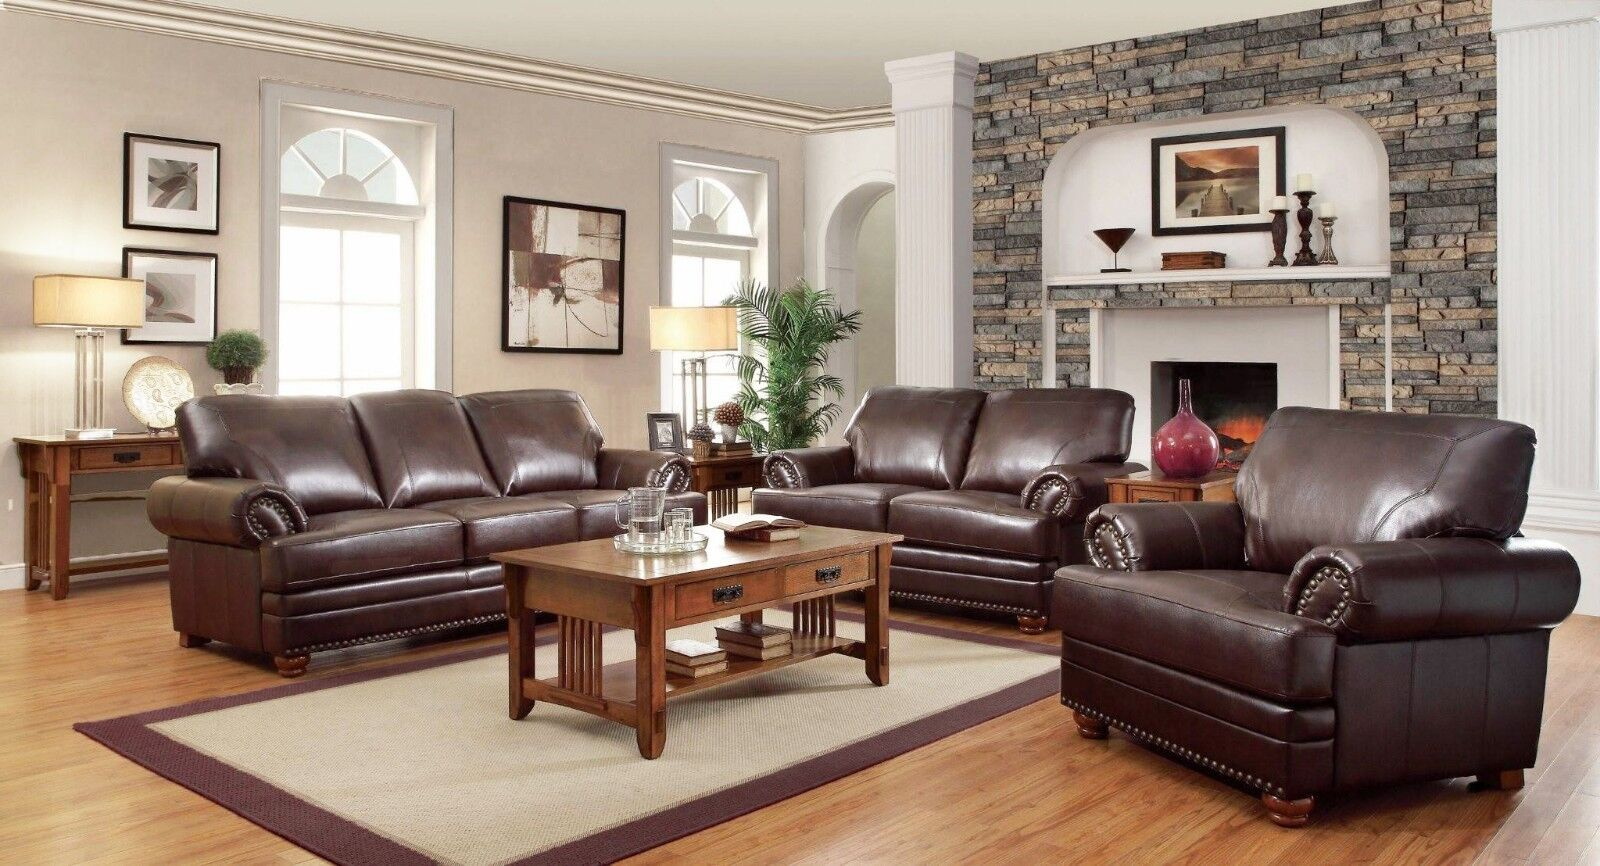 Details about Traditional Brown Bonded Leather Sofa Loveseat & Chair 3  Piece Living Room Set